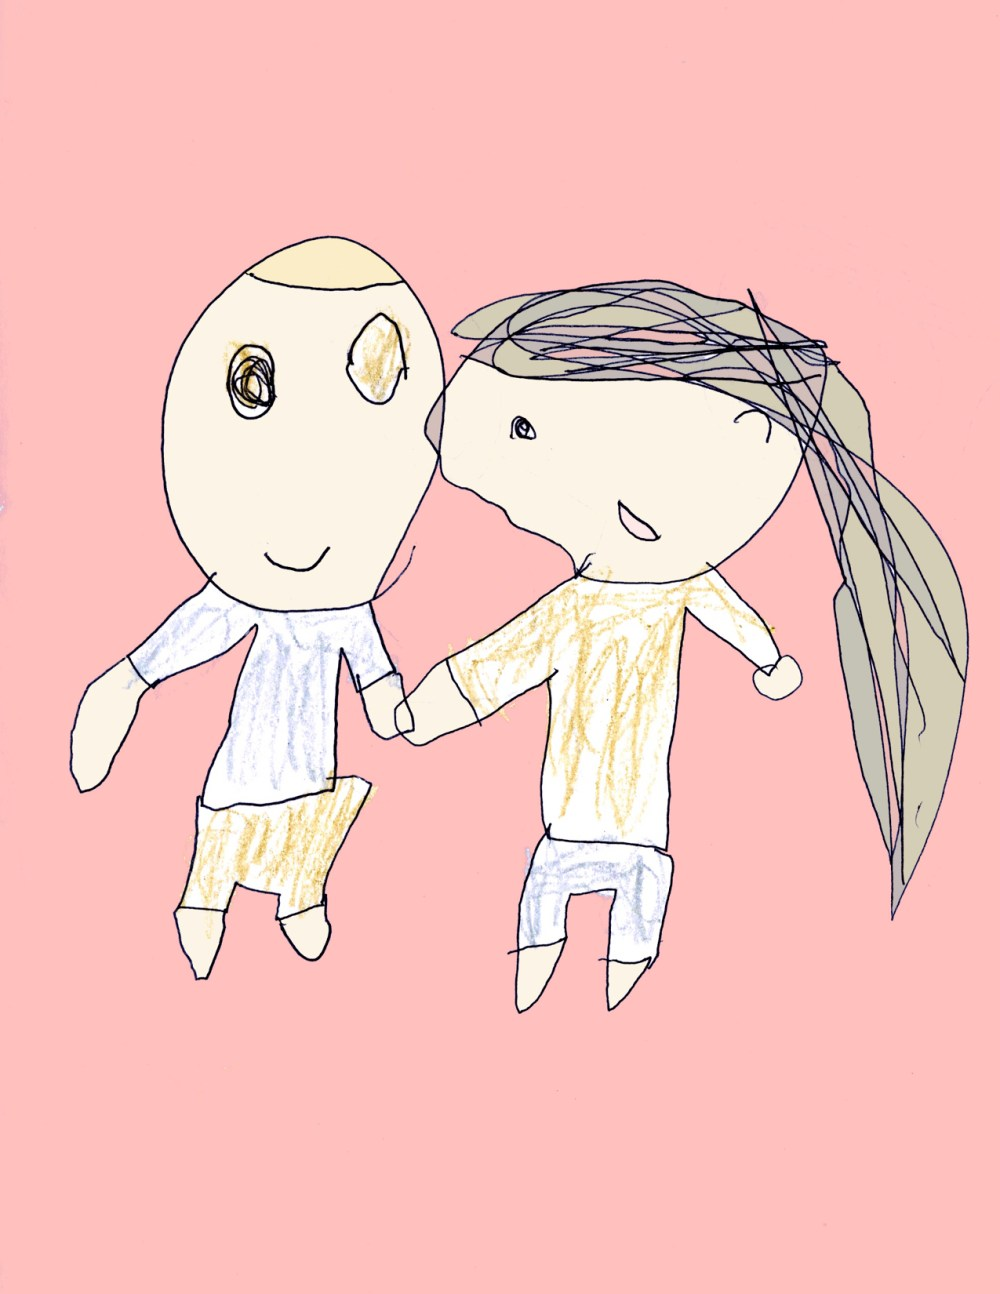 Boy and Girl by Kells with color small, age 4